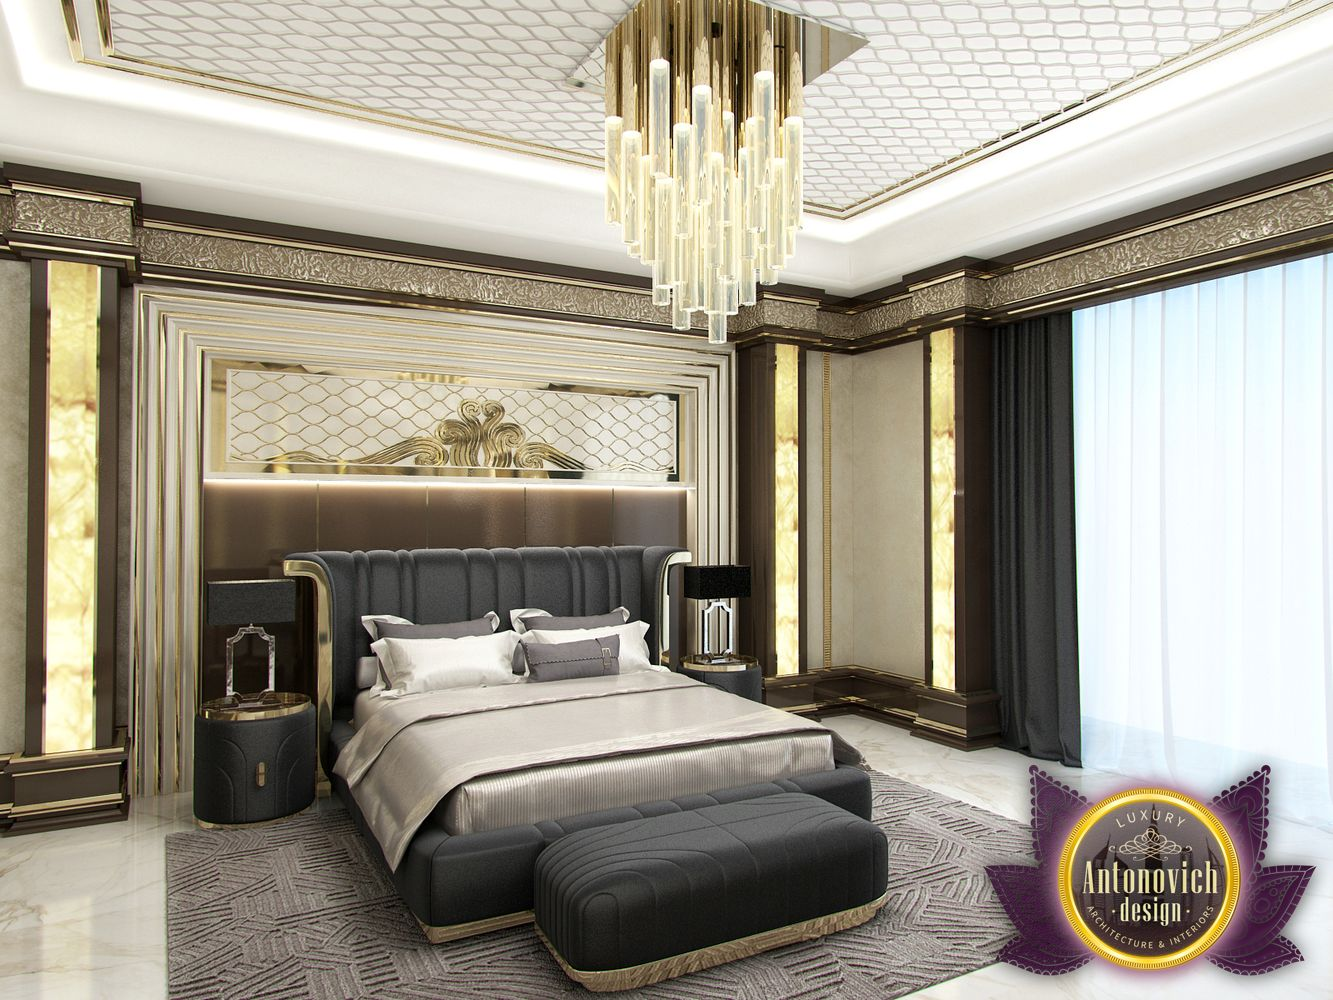 Luxury antonovich design uae master bedroom in modern for New style bedroom bed design